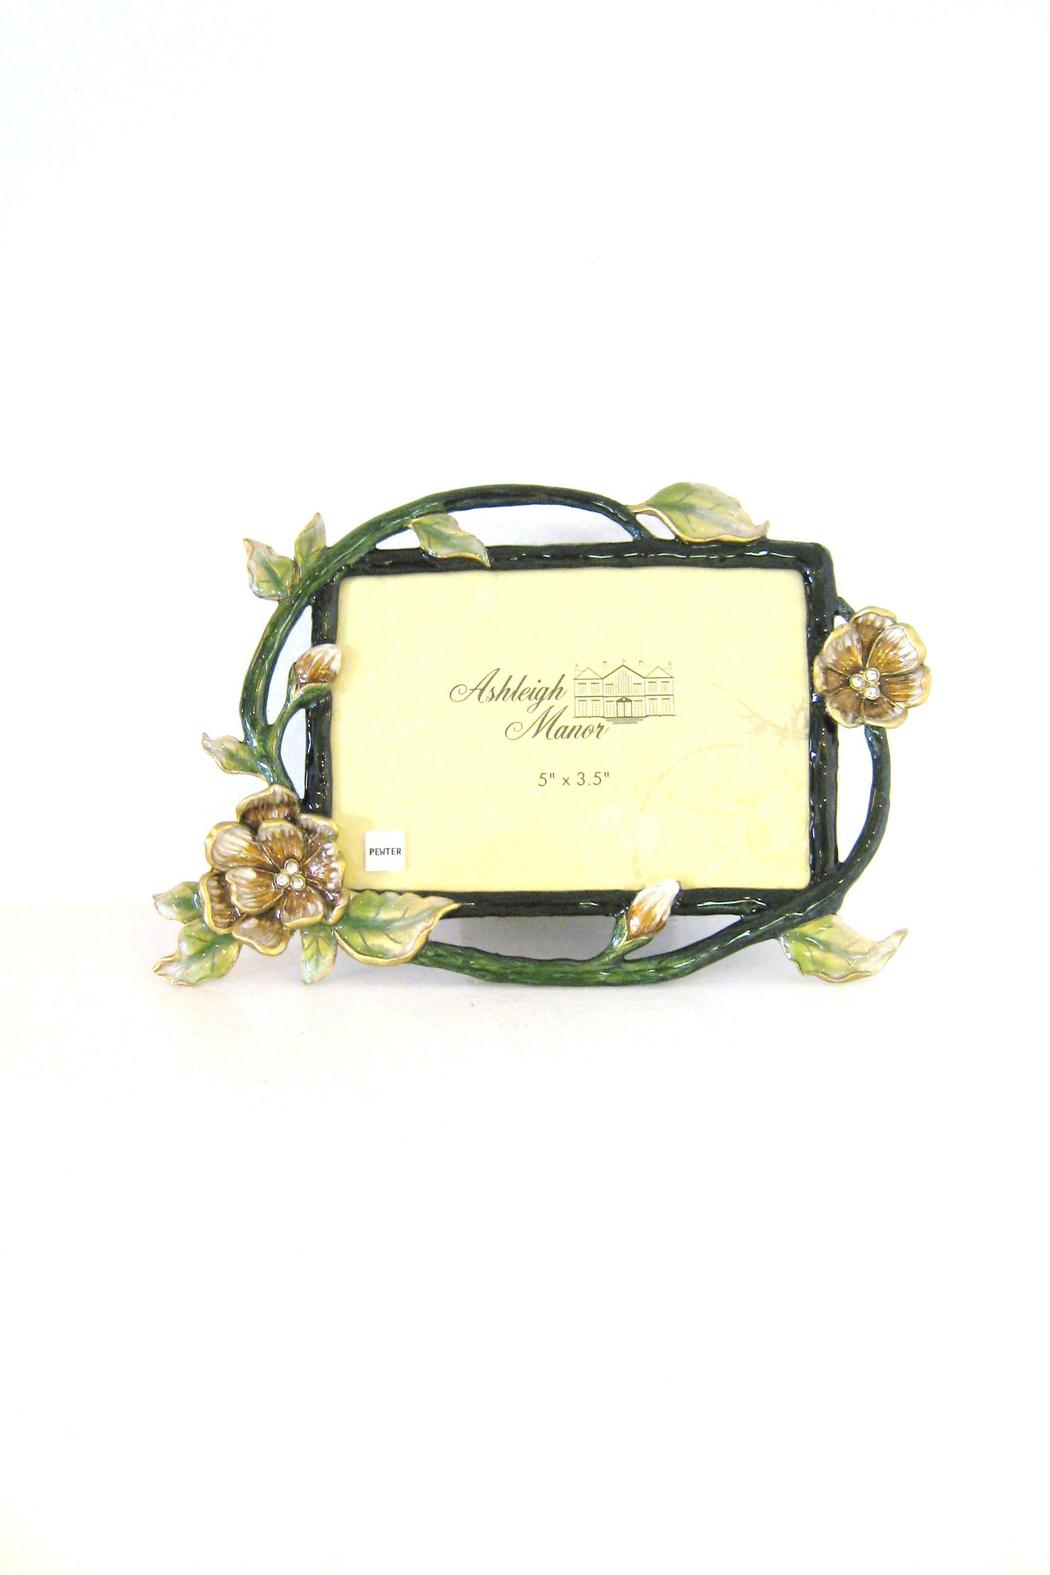 Ashleigh Manor Floral Corsage Frame from New Jersey by Deseos ...